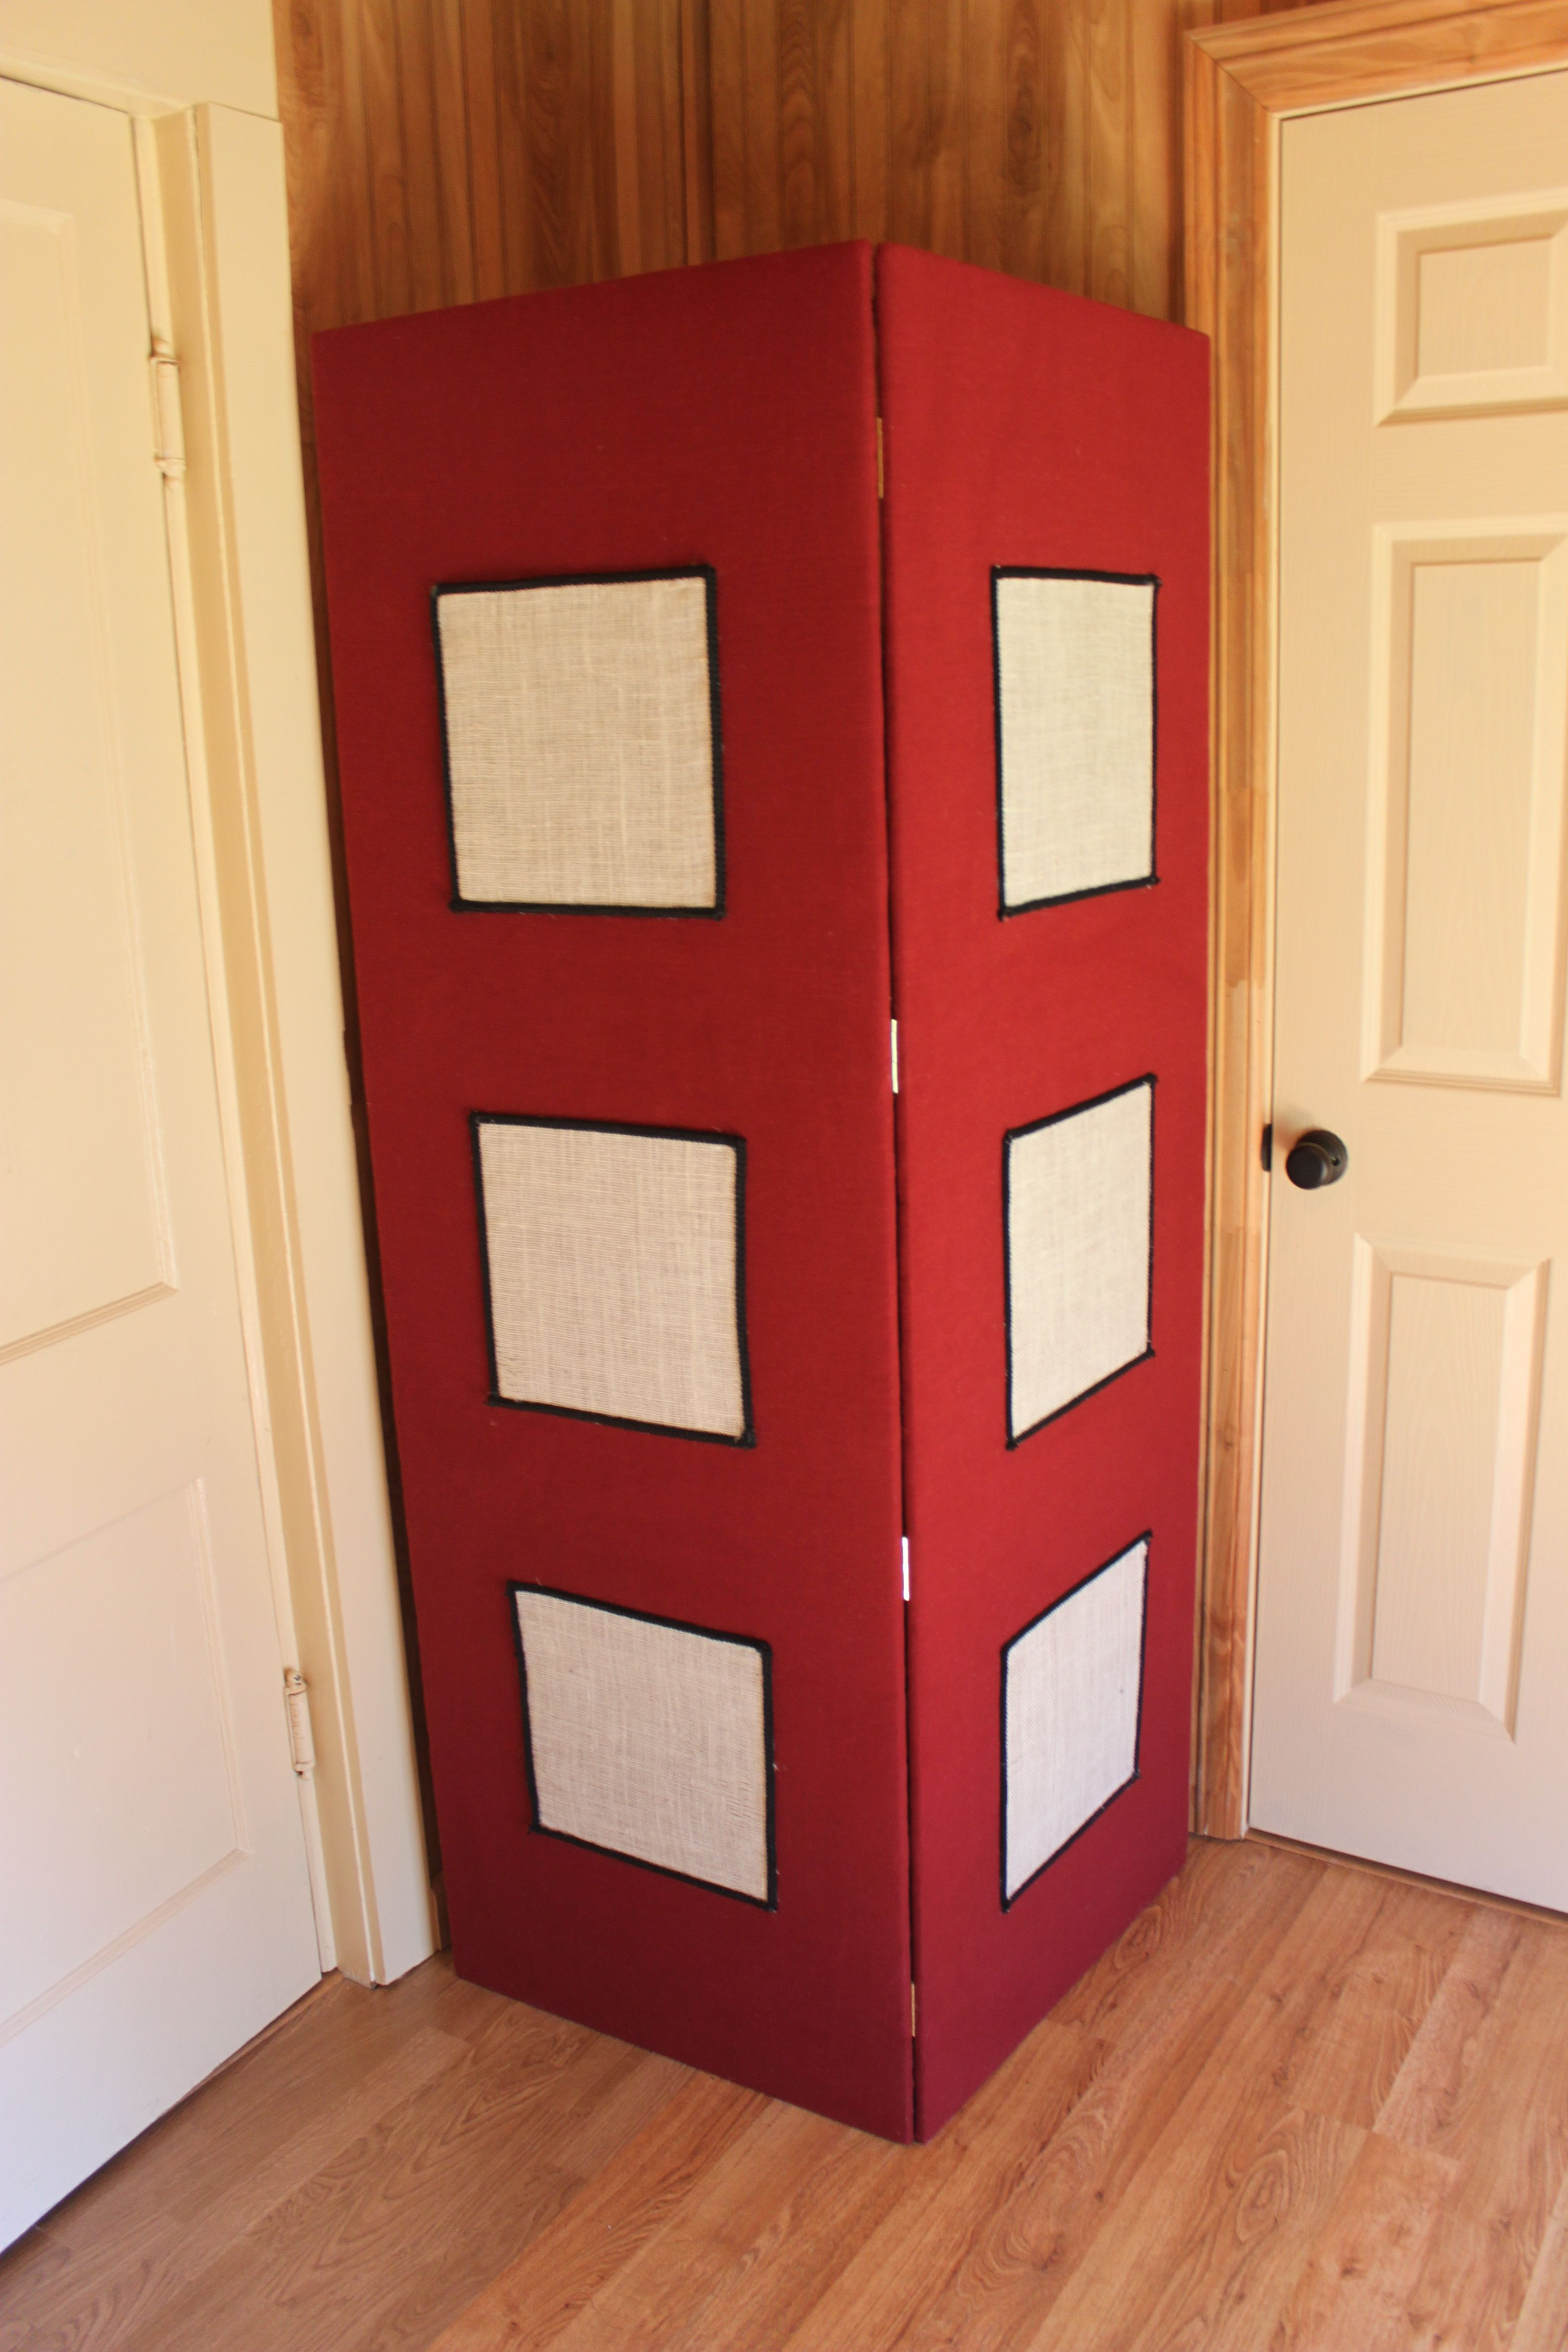 Hot Water Heater Enclosure Ideas : water, heater, enclosure, ideas, Kimberly, Metcalf, She's, Crafty, Water, Heater, Cover,